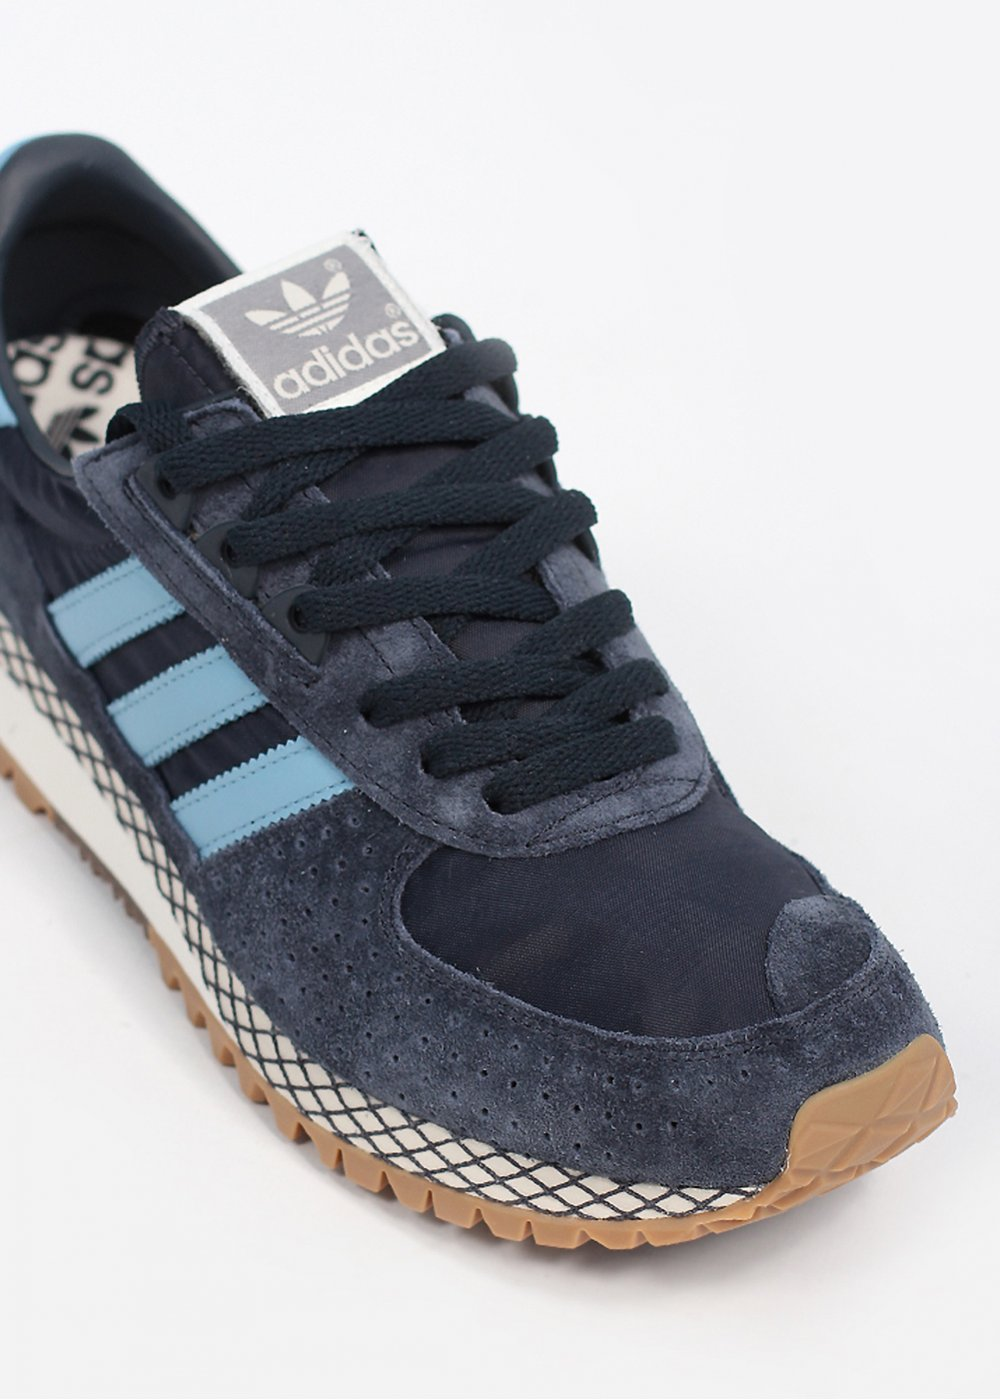 5b9c72e83b74 adidas Originals City Marathon PT 42 195